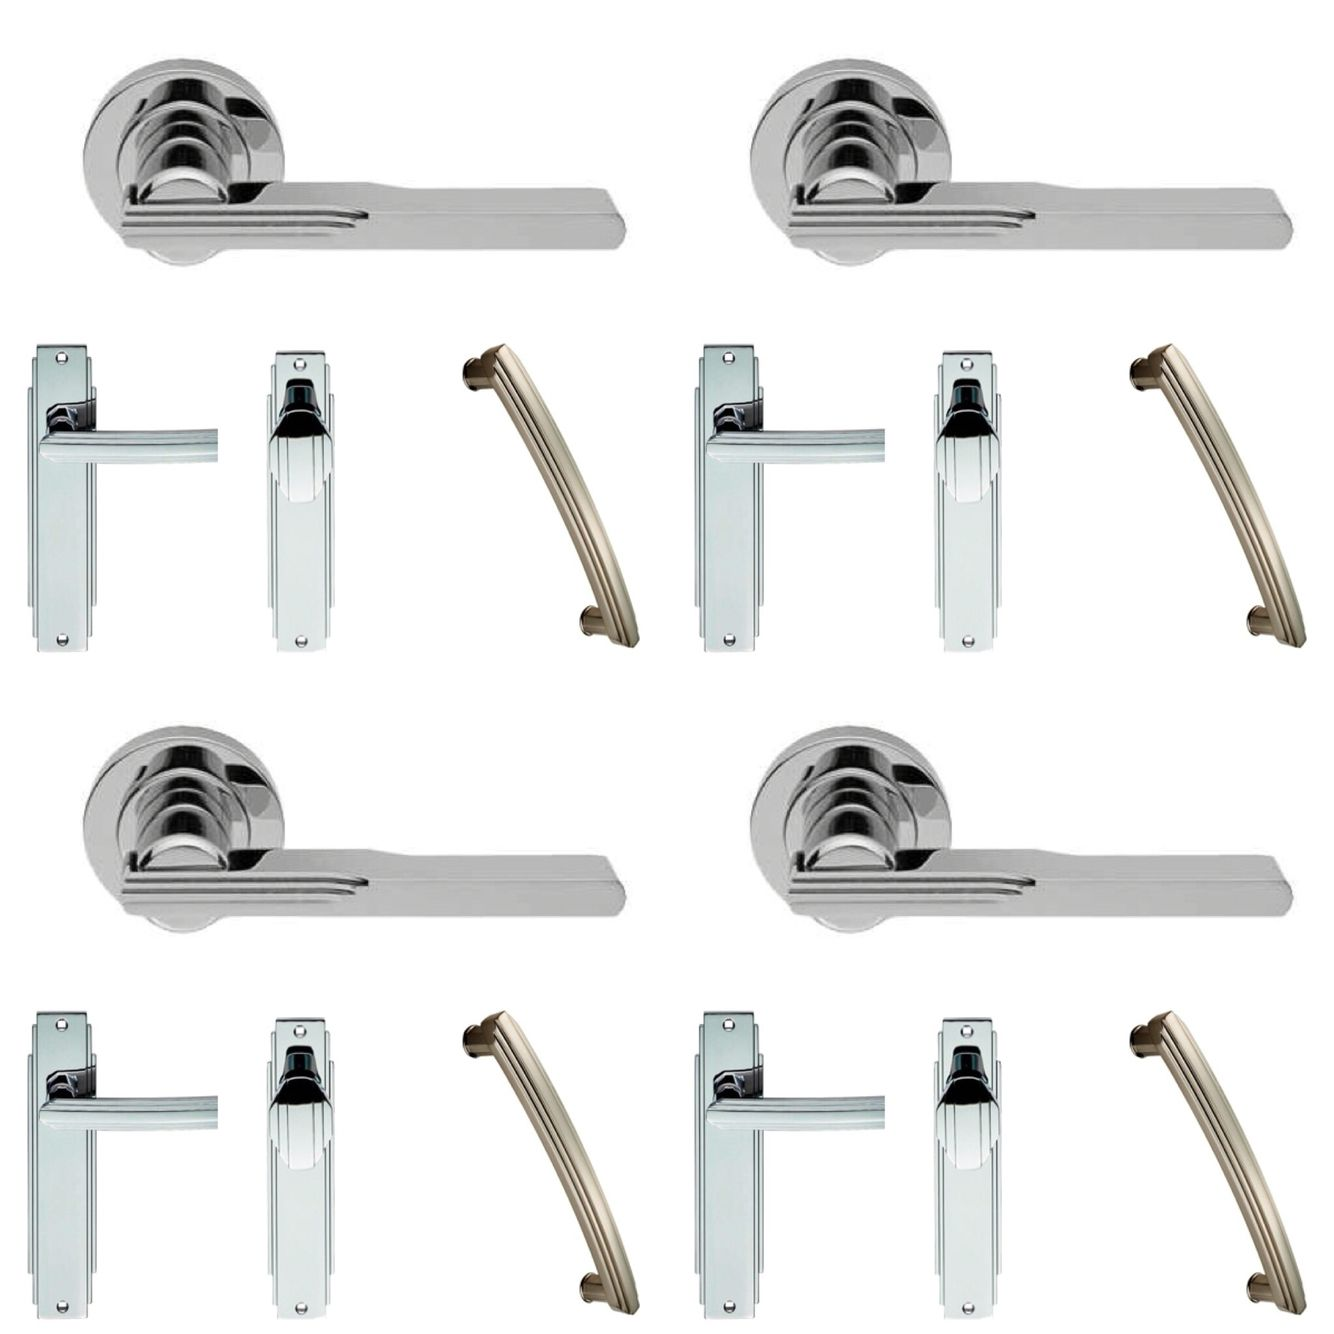 New art deco handle range from gradans door handle pinterest